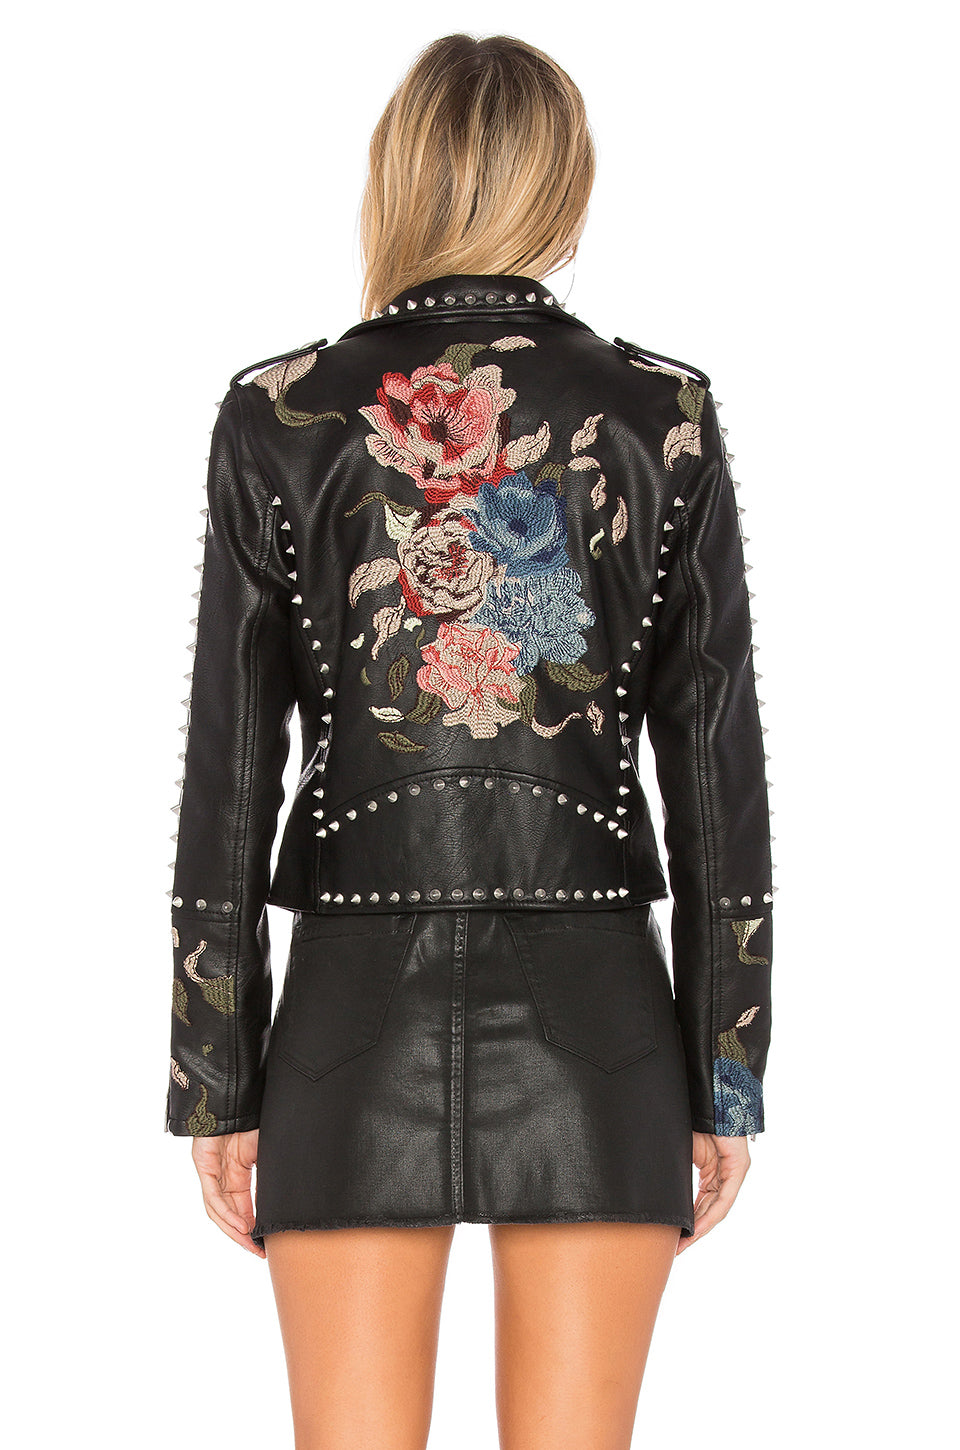 Blank NYC Budding Romance Studded Vegan Leather Jacket